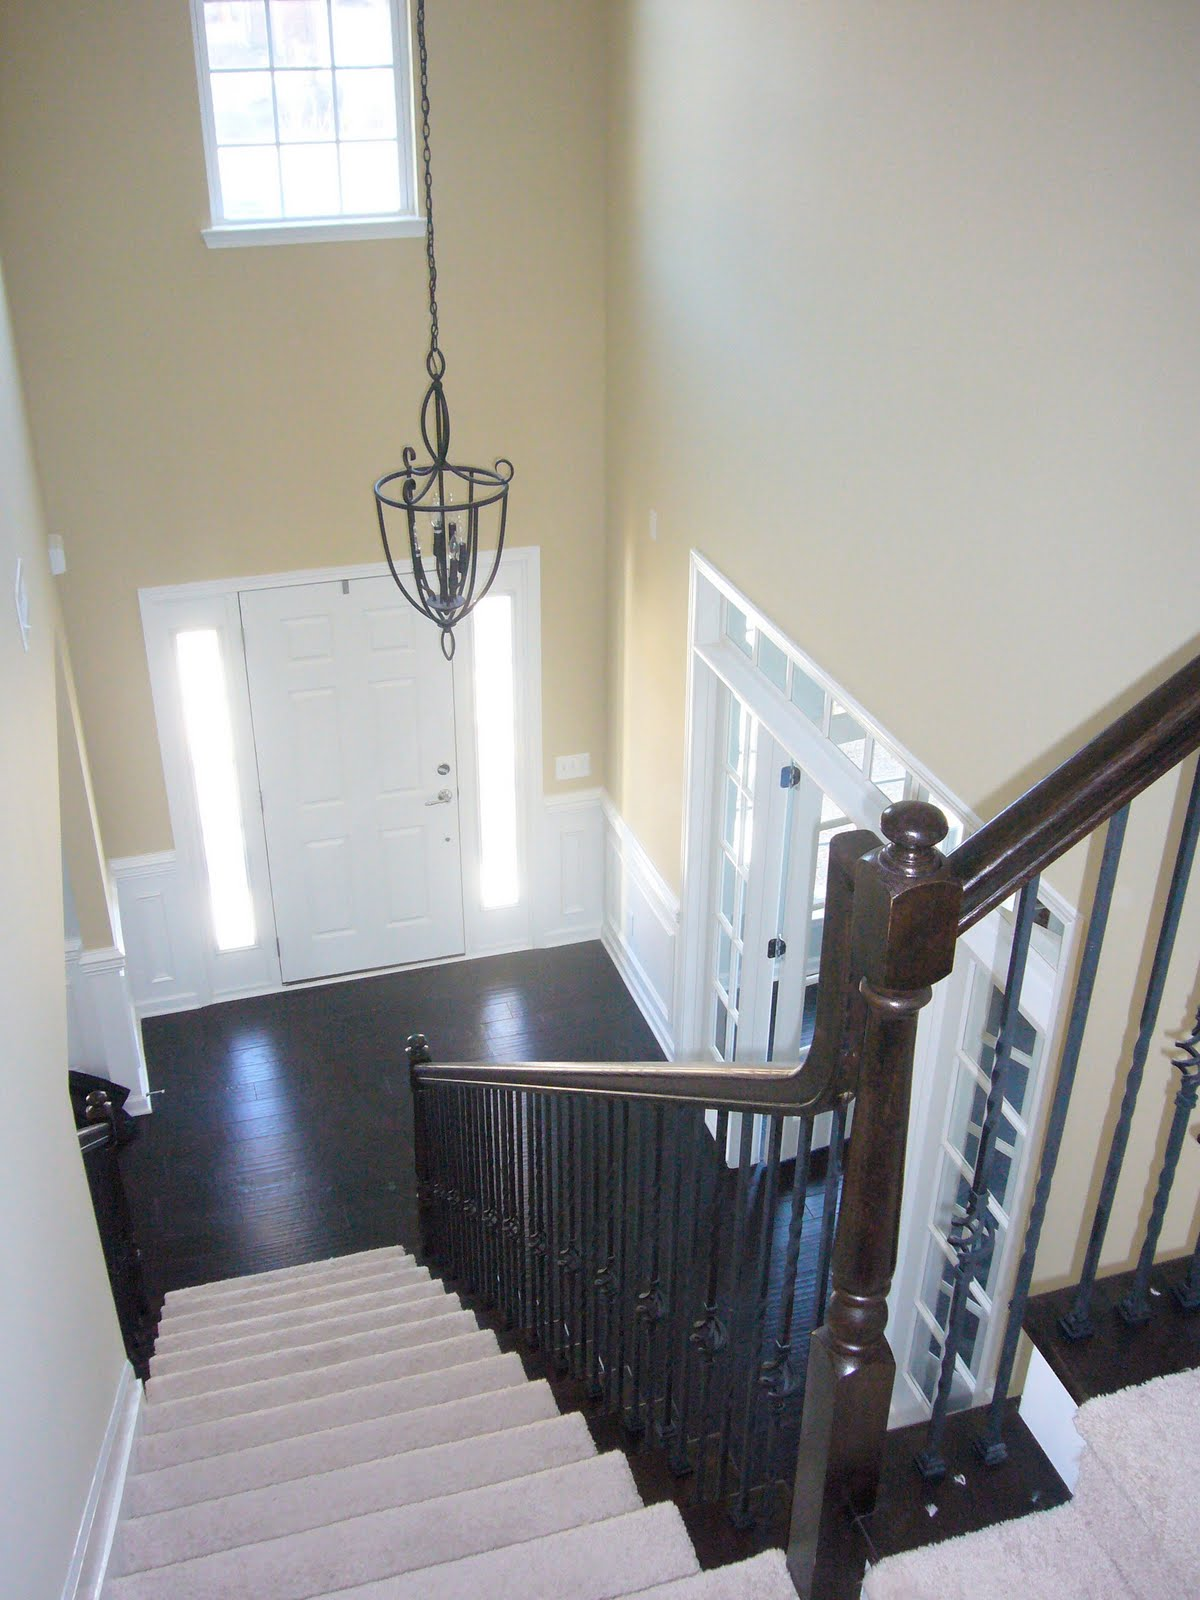 Home Without A Foyer : What color should i paint my foyer decorating by donna